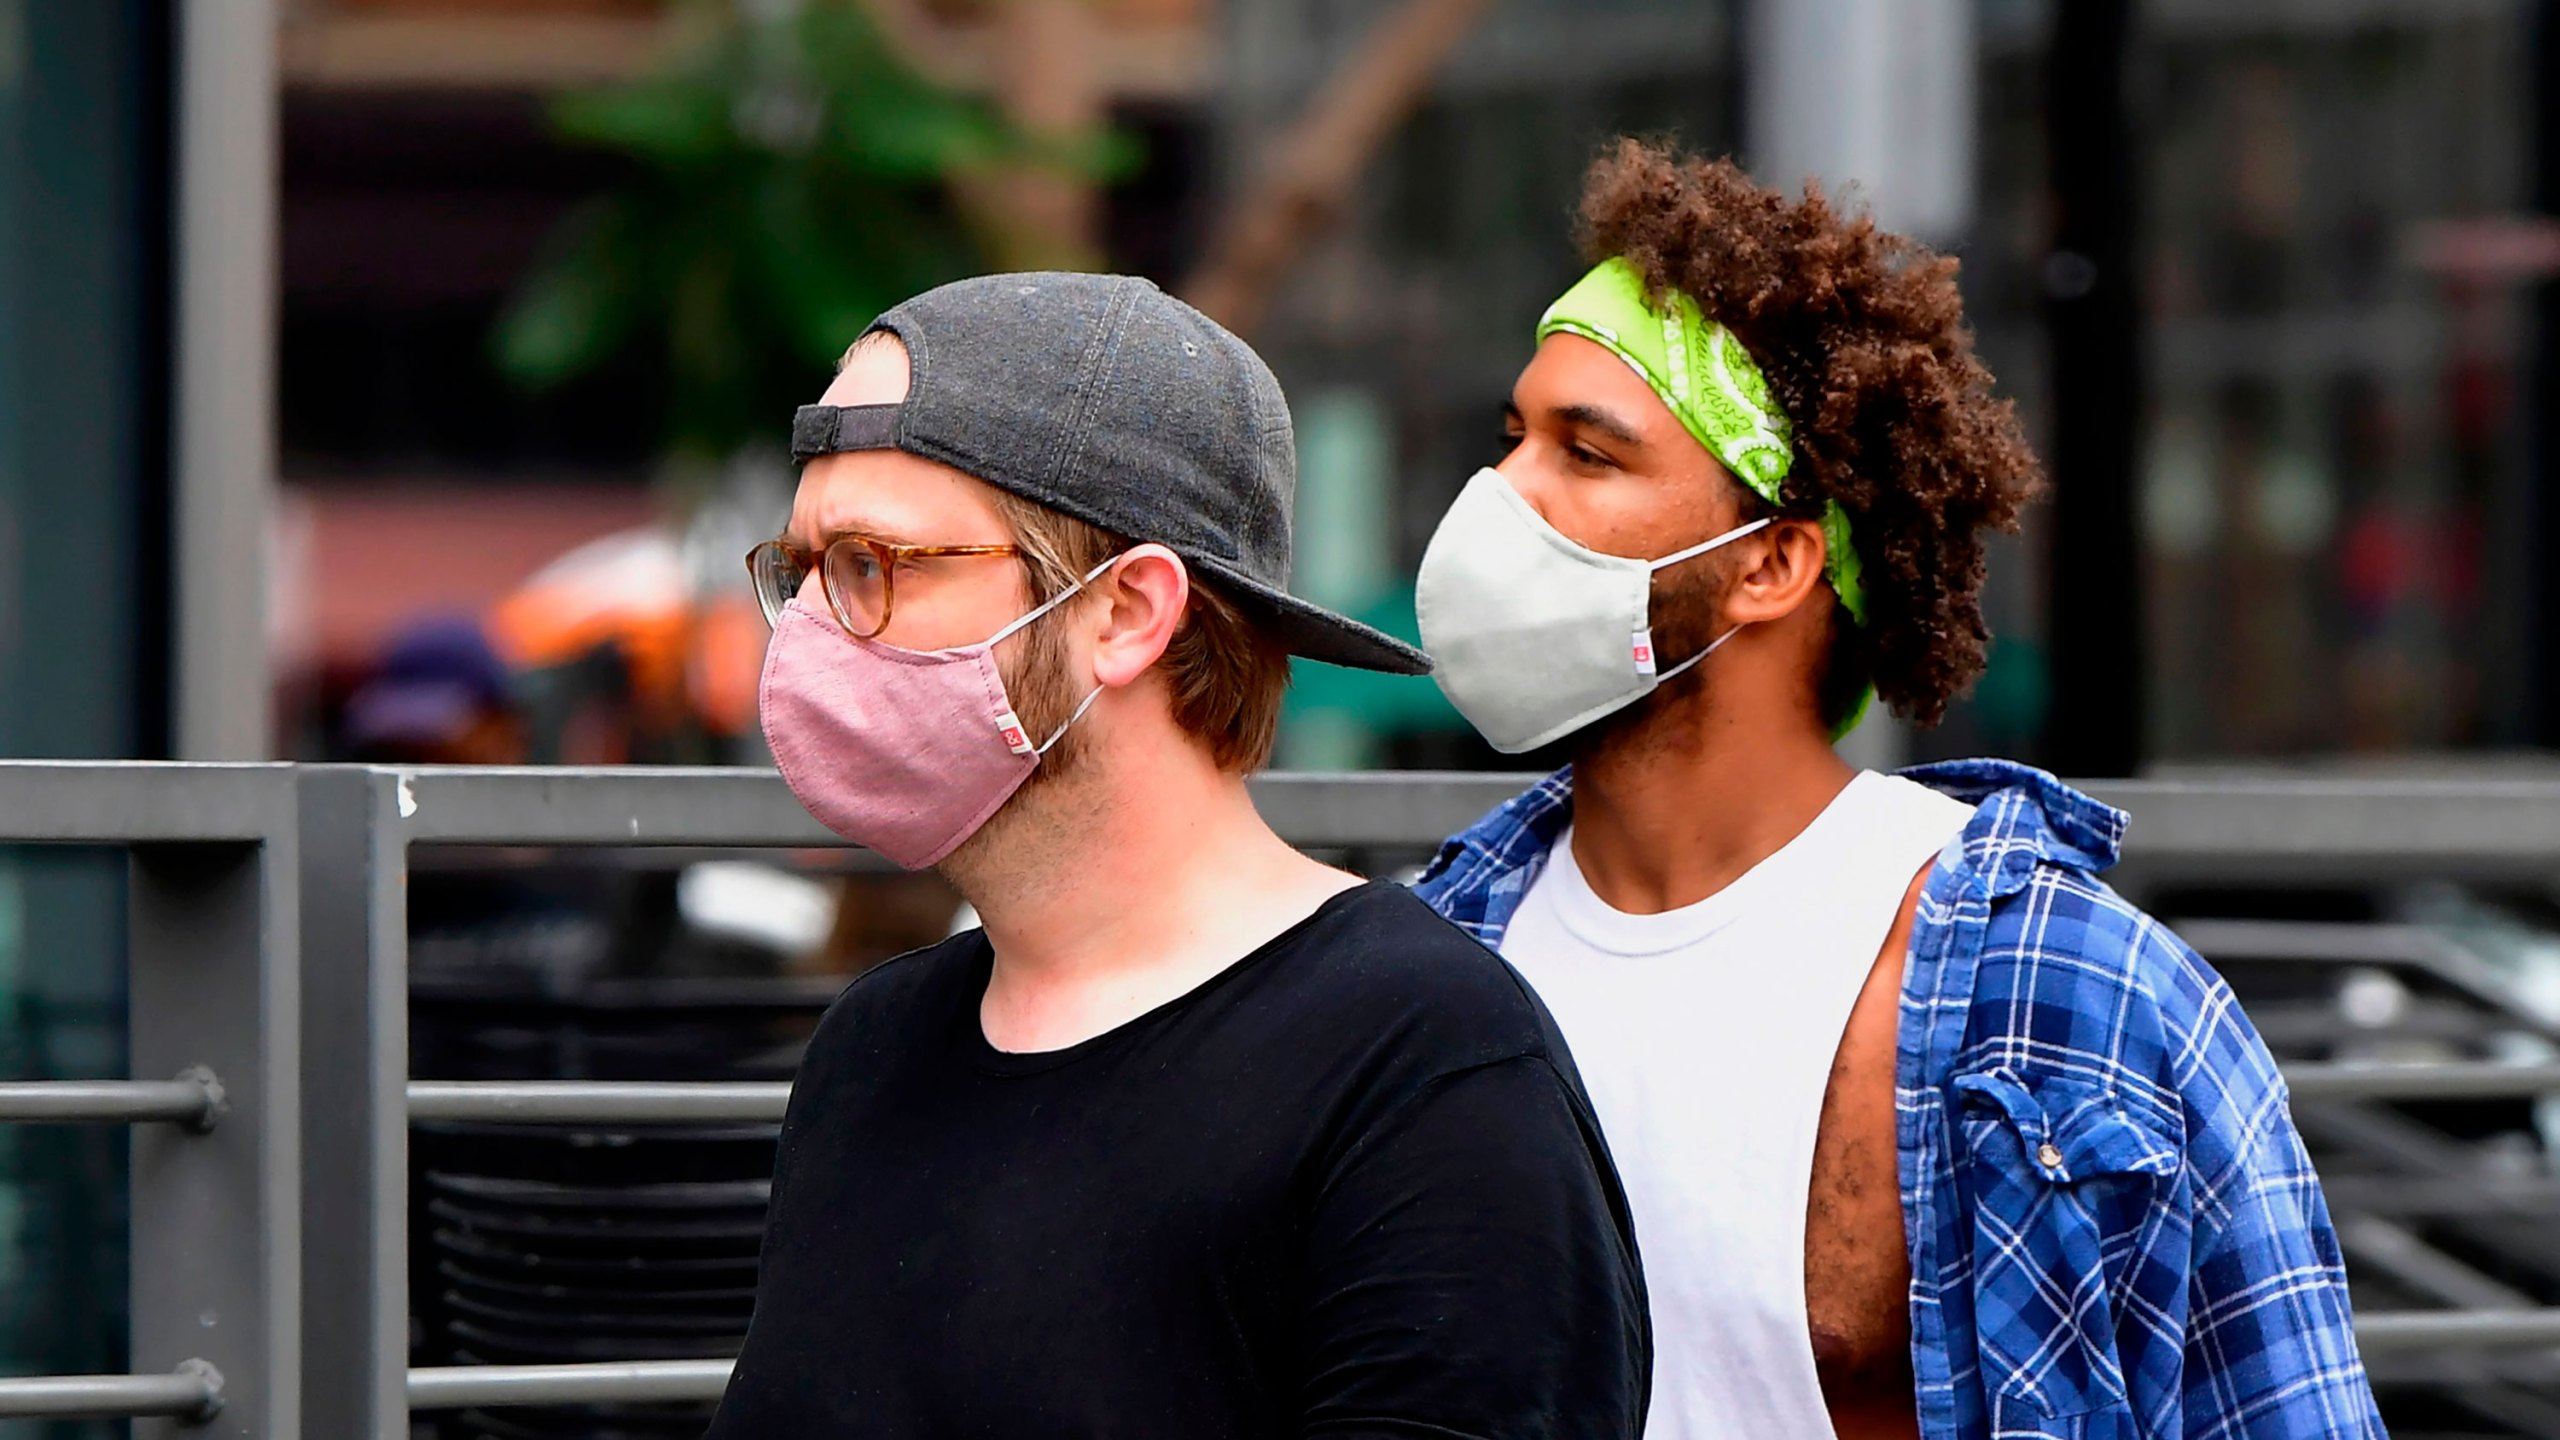 Young men wearing facemasks due to the coronavirus pandemic are seen in Los Angeles on June 29, 2020. (FREDERIC J. BROWN/AFP via Getty Images)